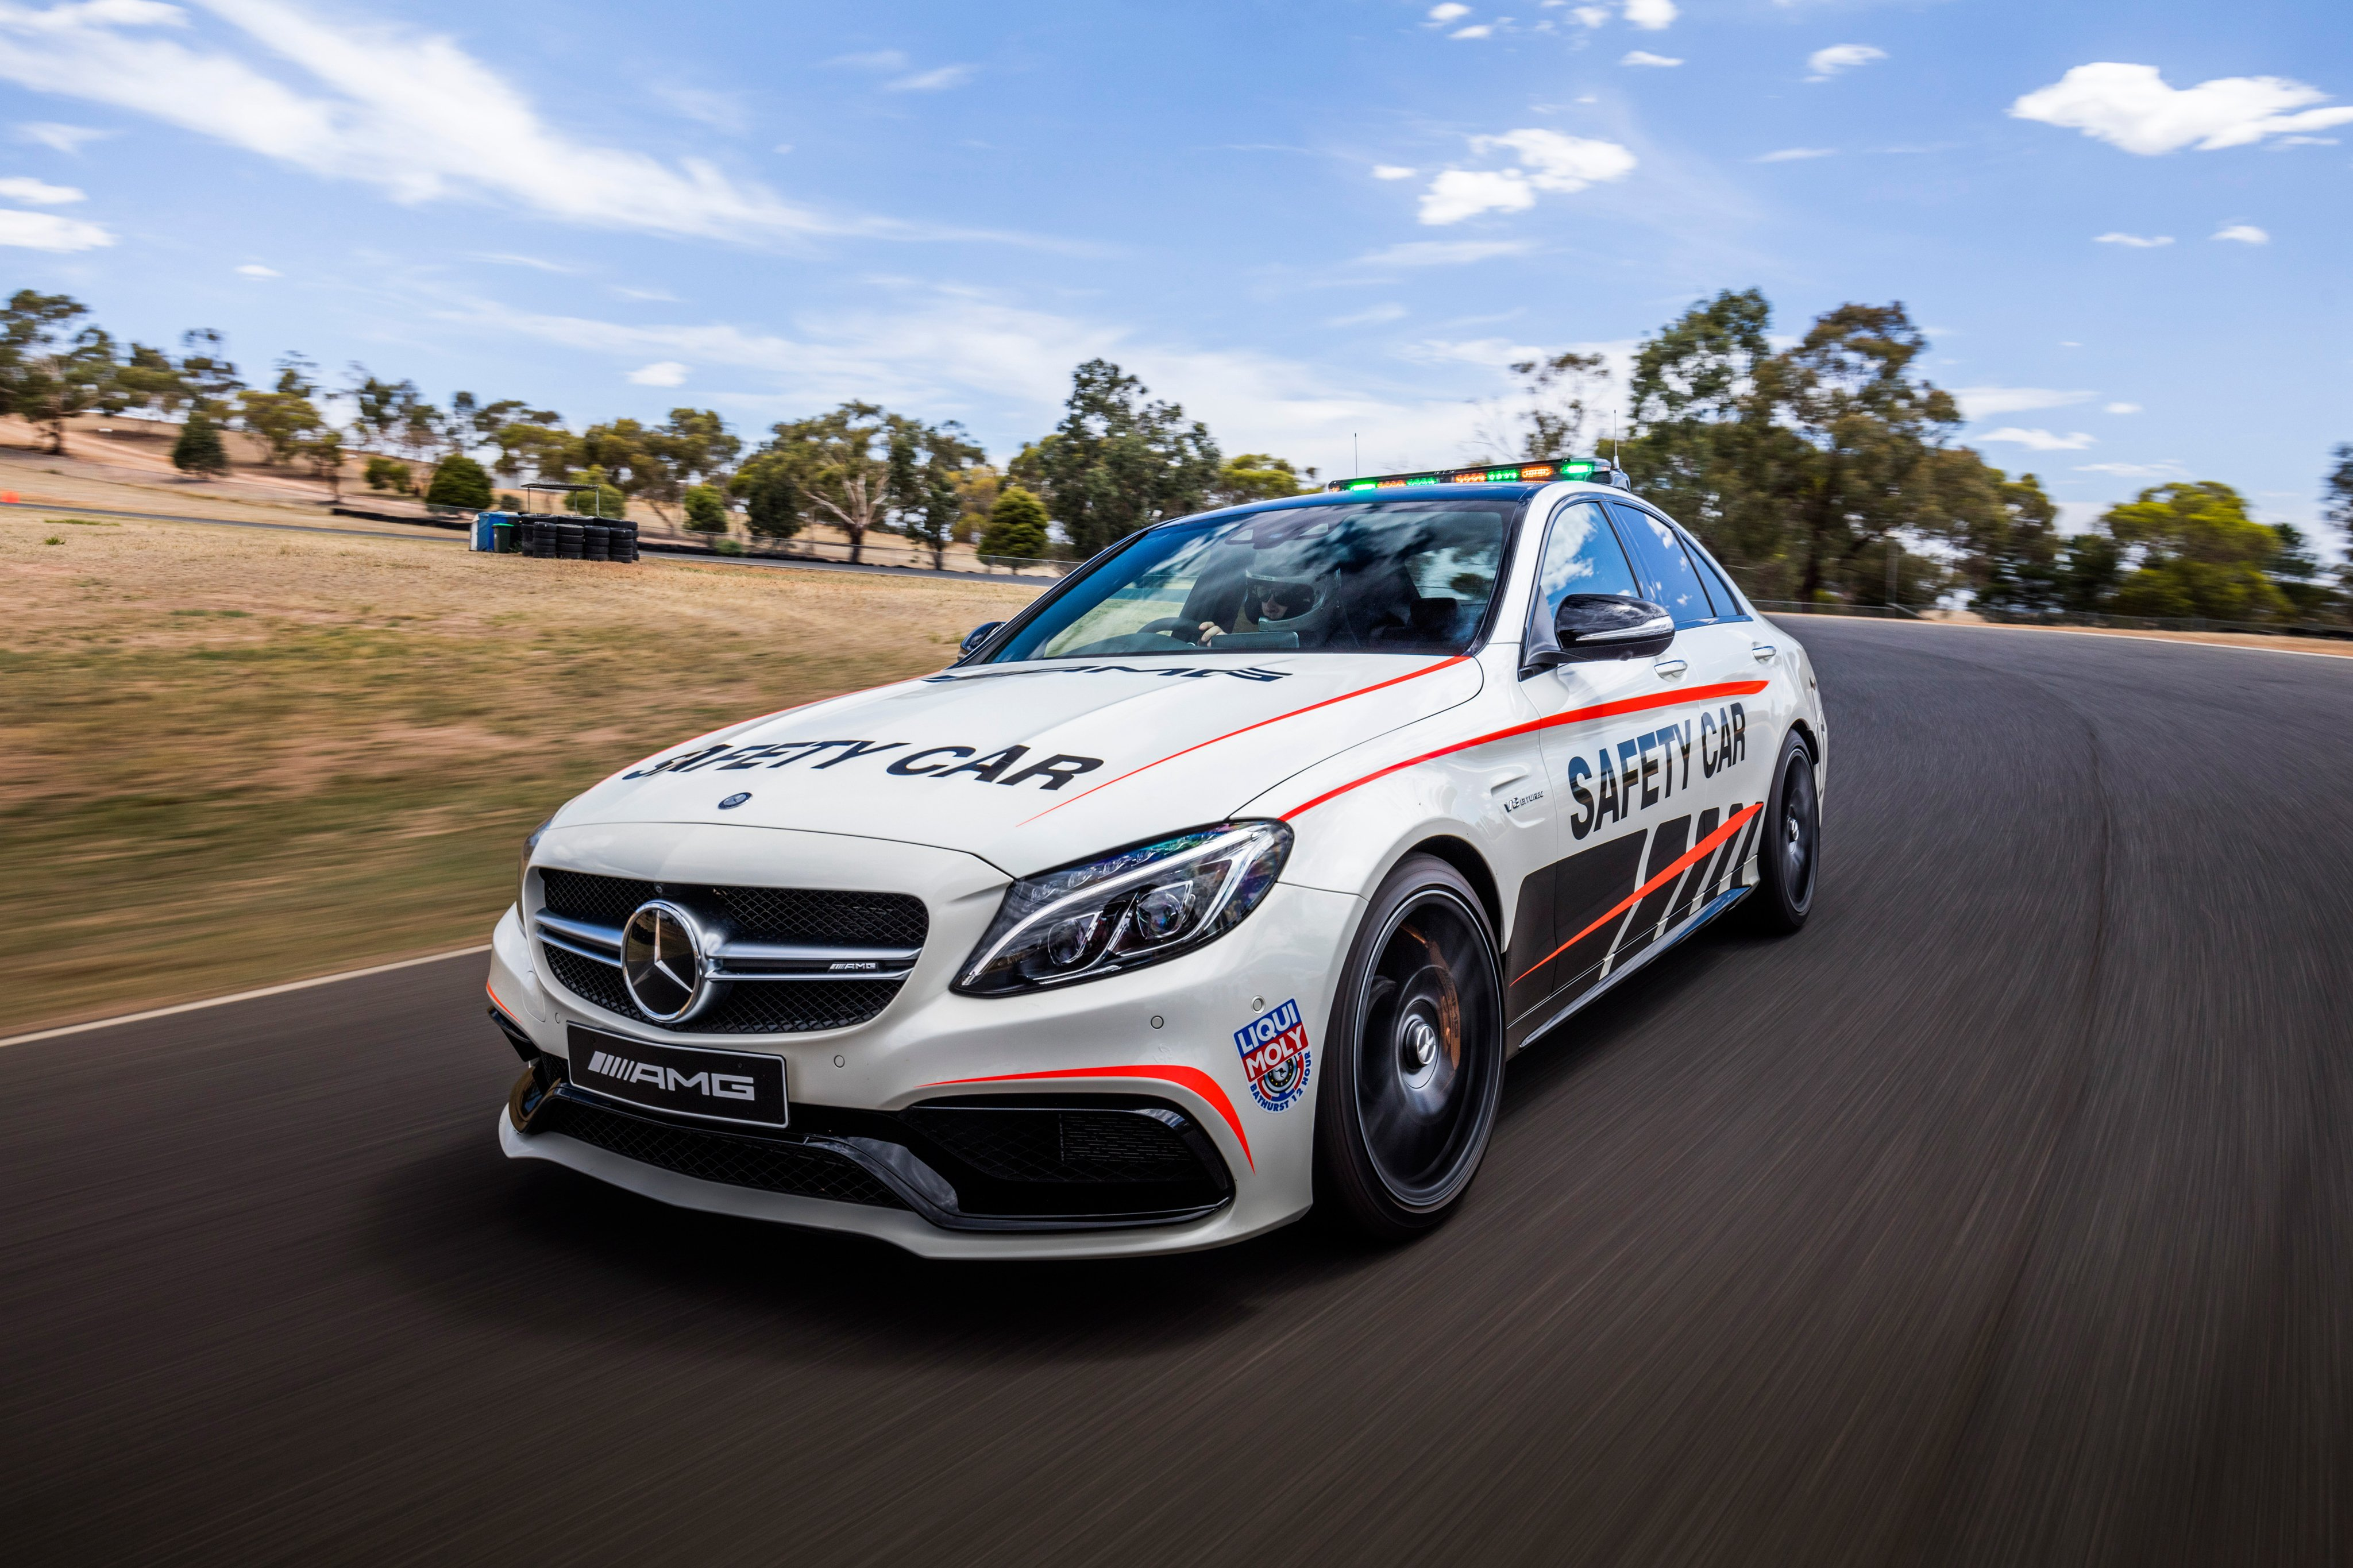 2016 mercedes amg c63 s safety car w205 pace race racing. Black Bedroom Furniture Sets. Home Design Ideas